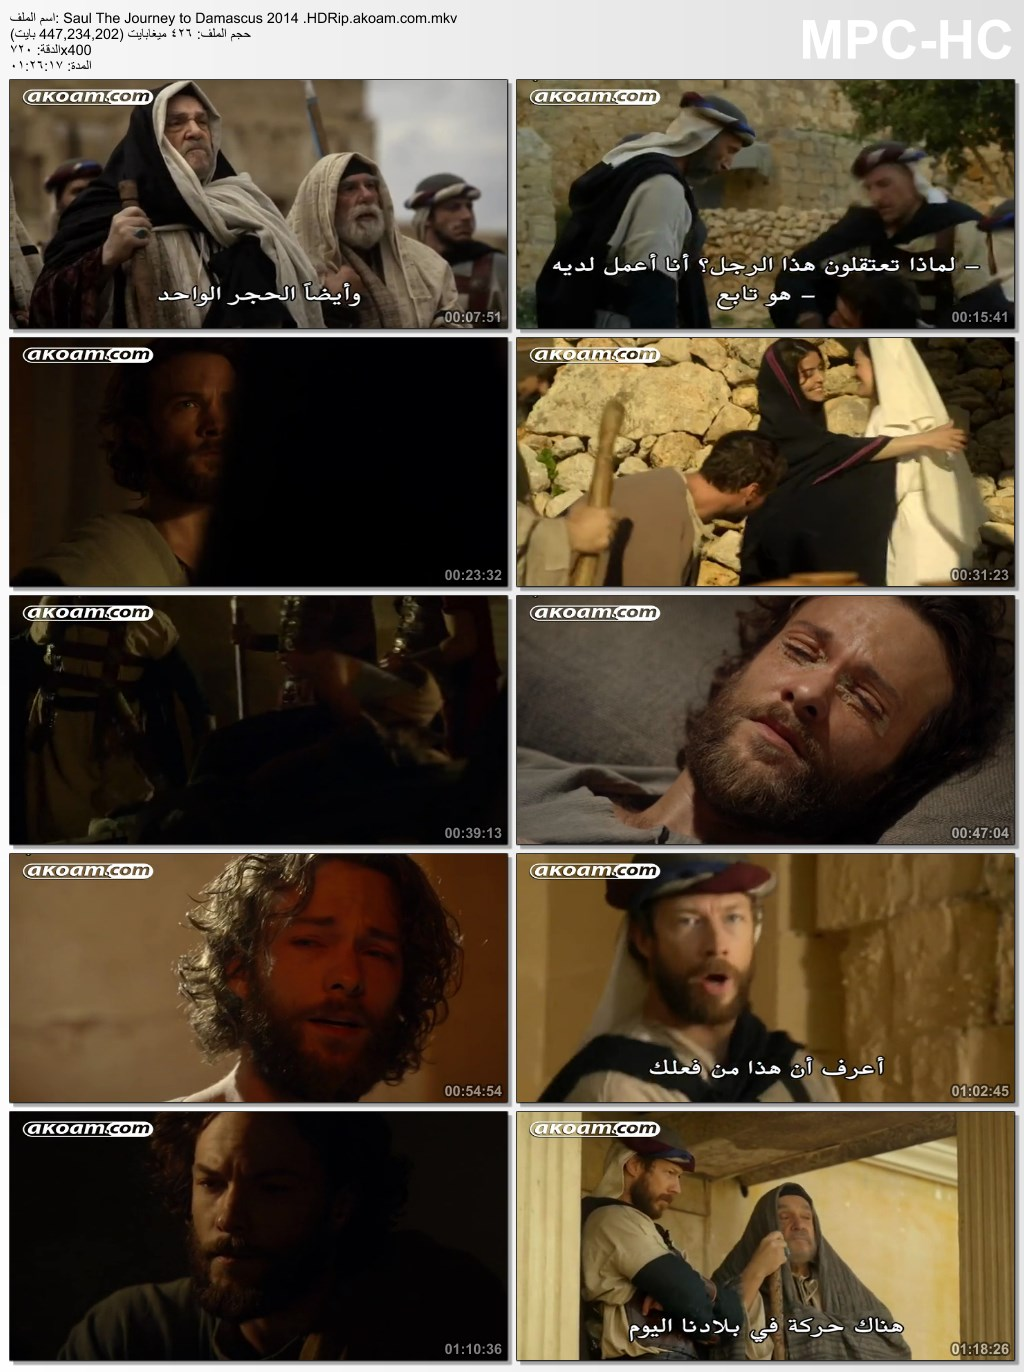 Saul The Journey to Damascus,Saul The Journey to Damascus 2014,الدراما